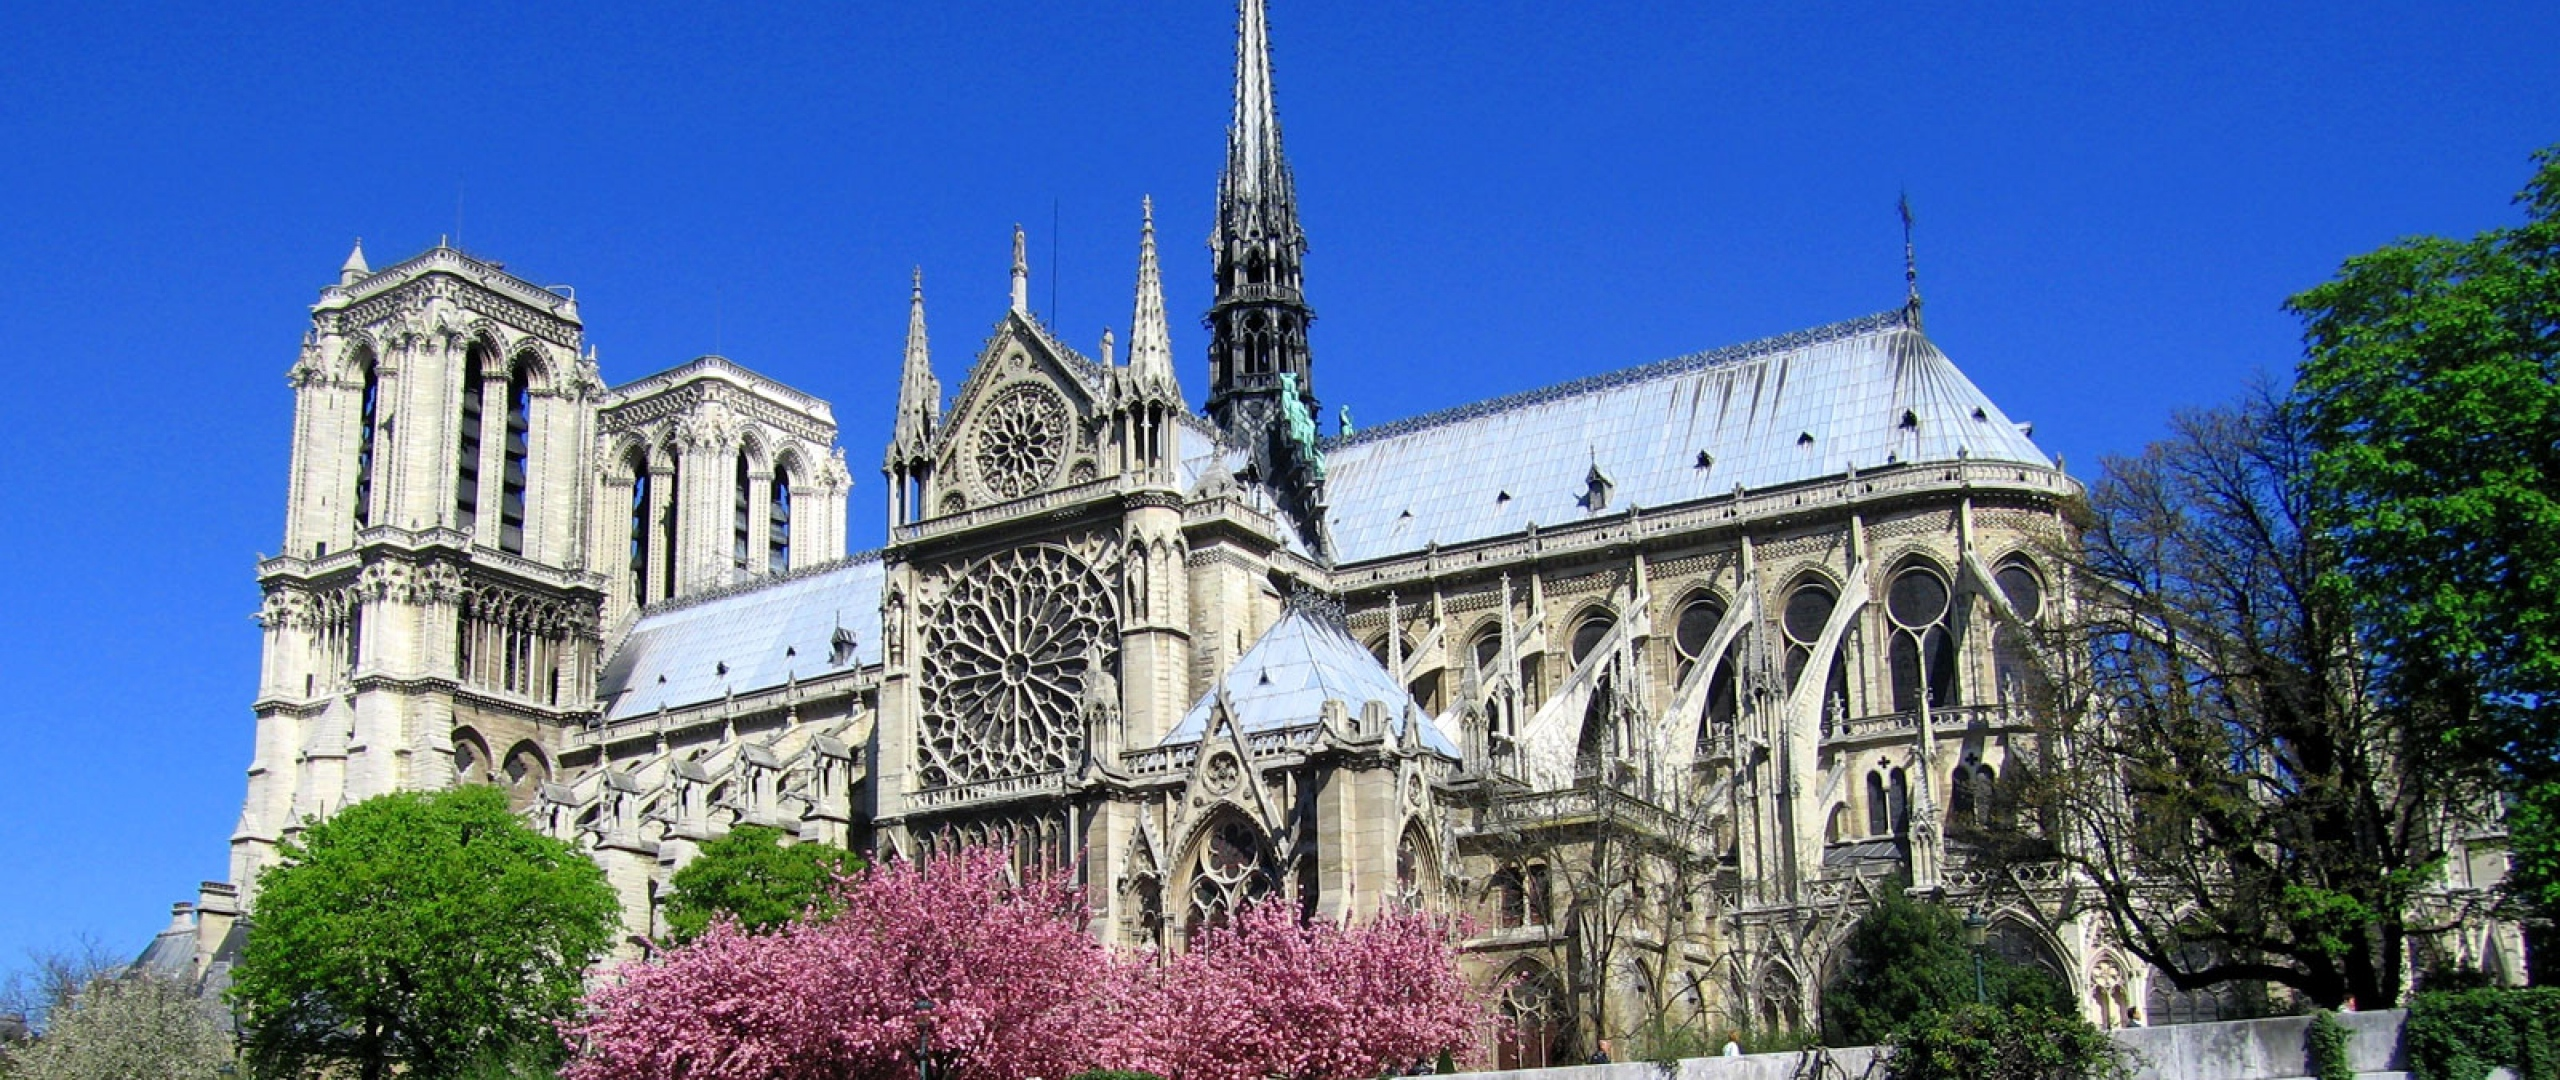 notre-dame_de_paris_cathedral_paris_france_10884_2560x1080